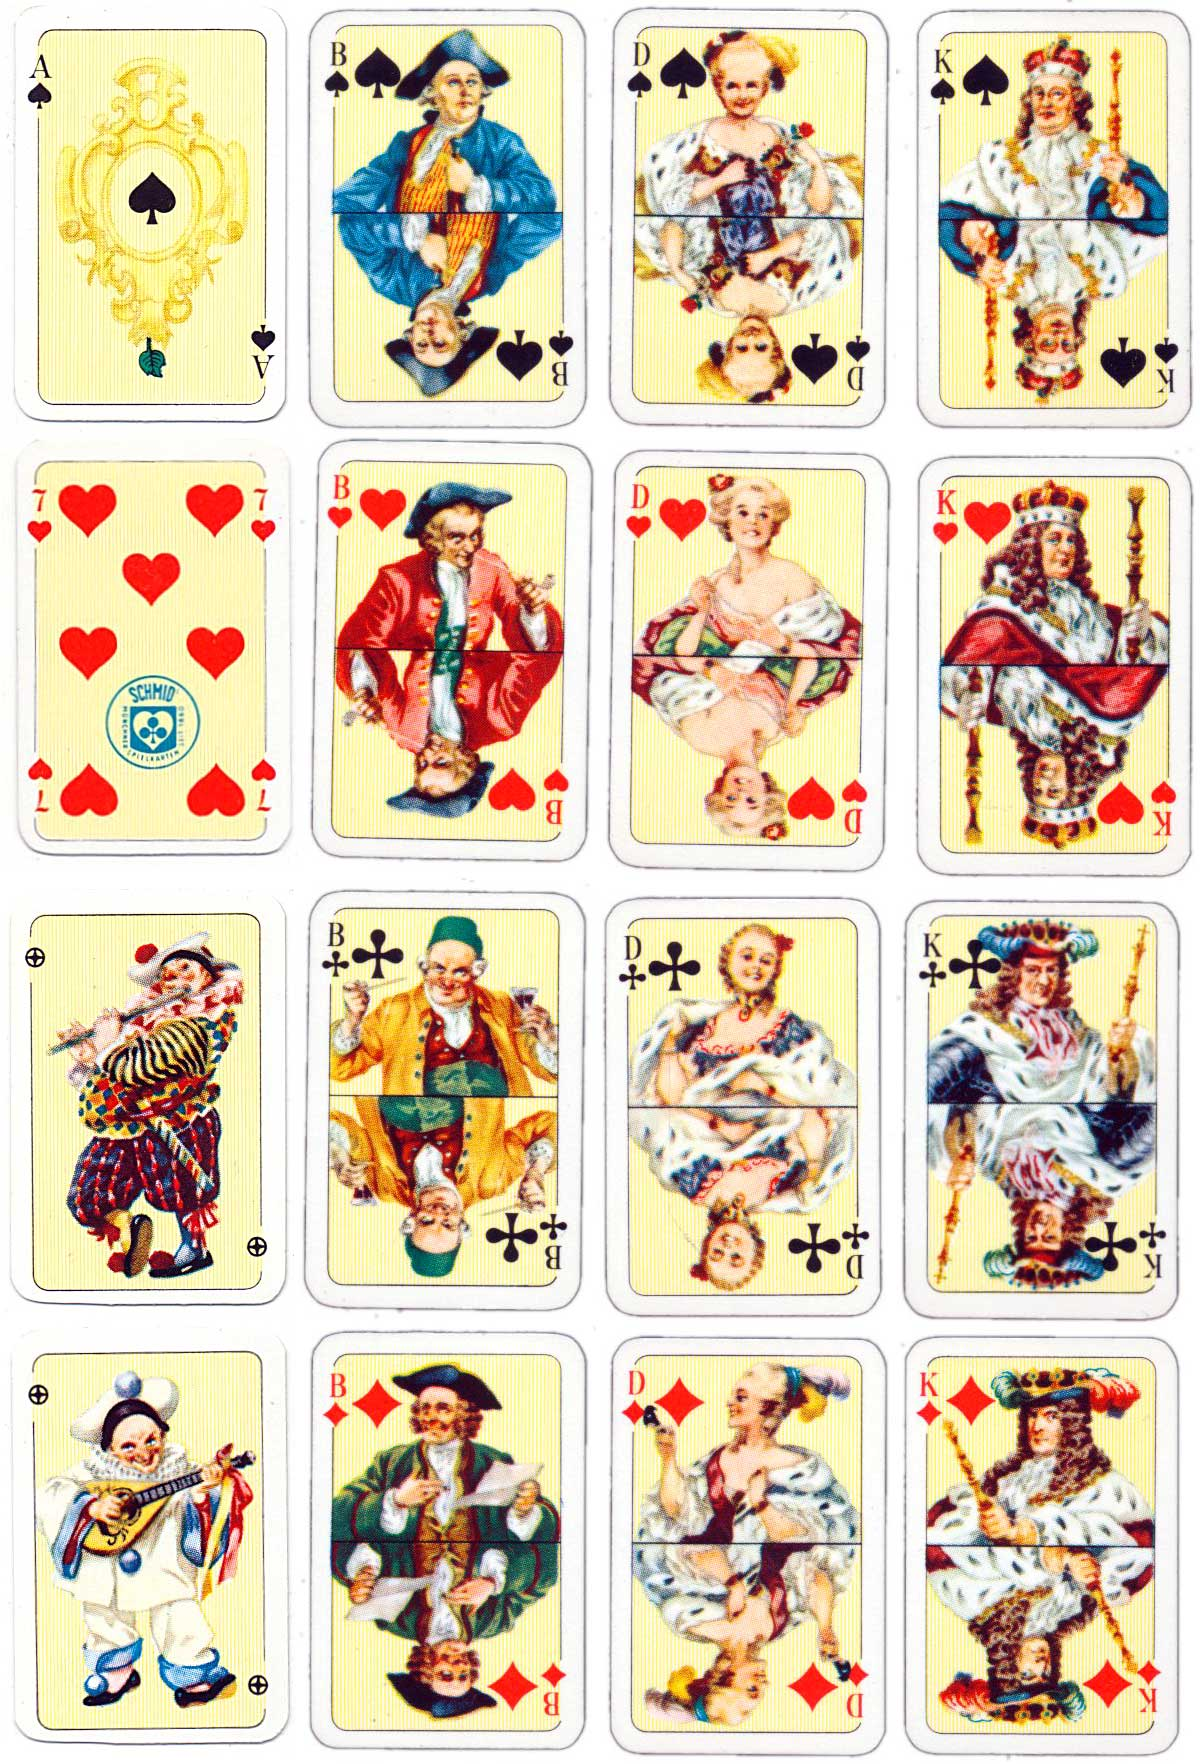 Miniature Patience playing cards published by F. X. Schmid, c.1960